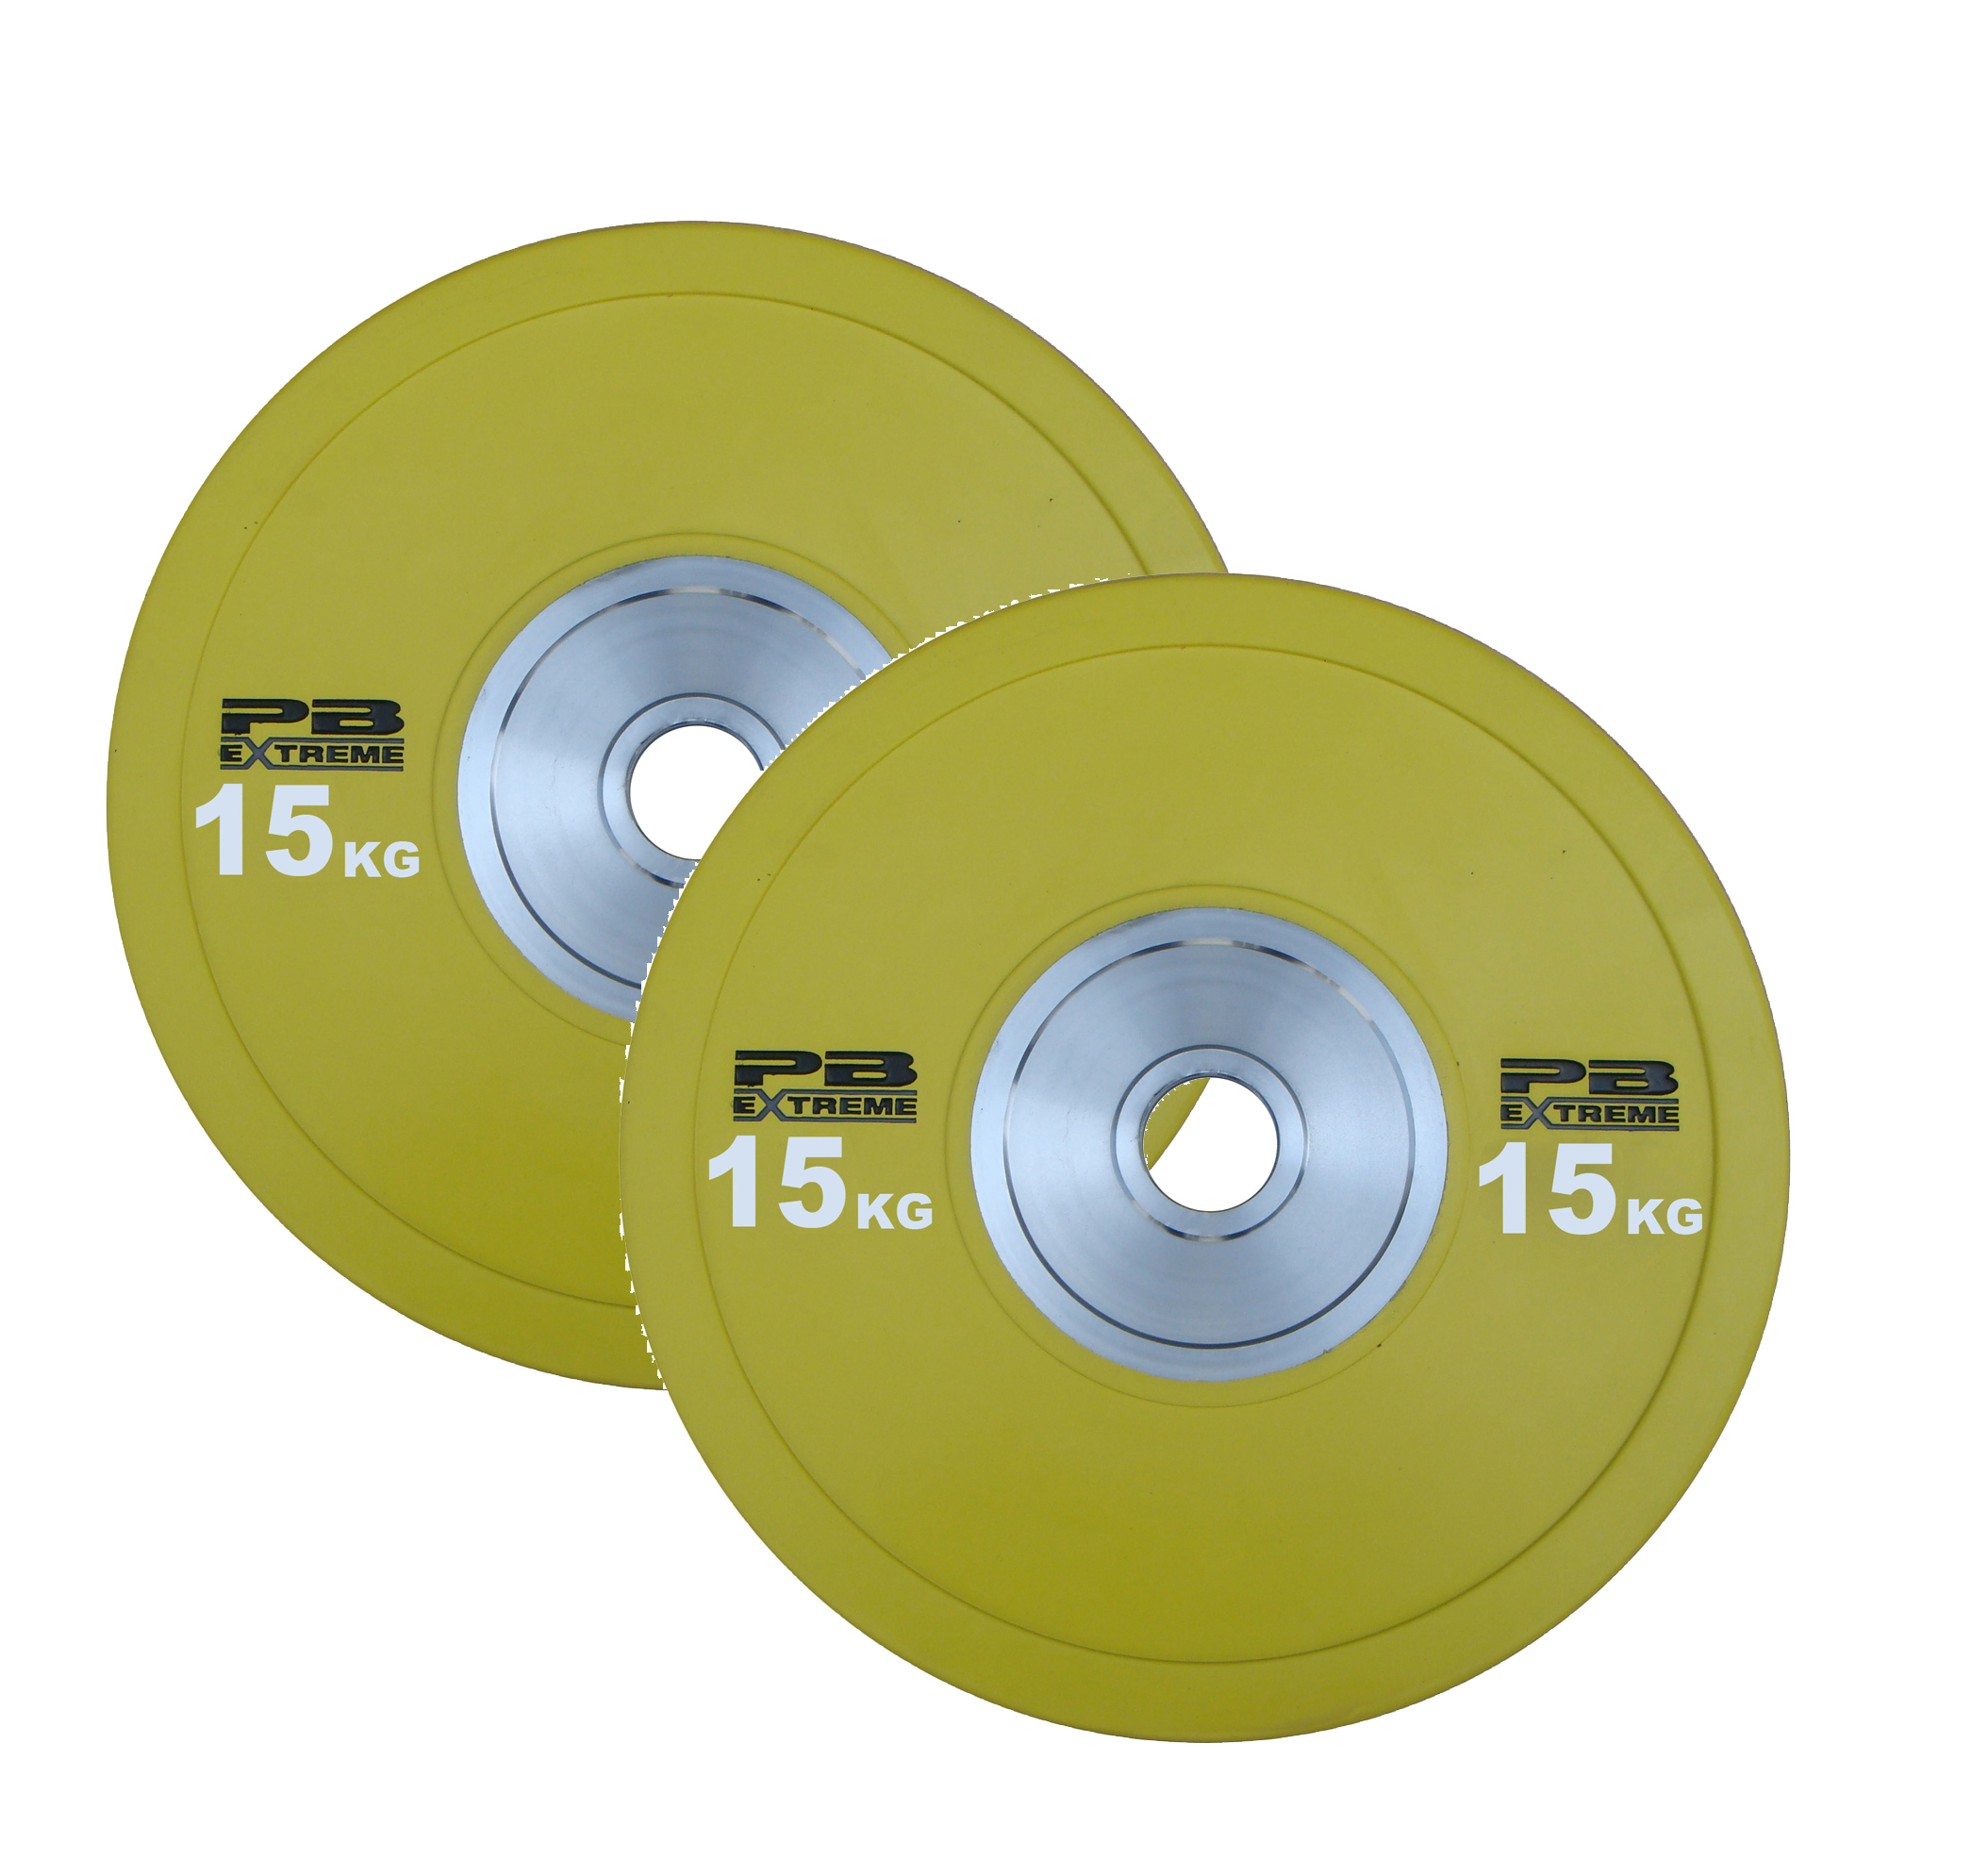 PB Extreme Competition Bumper Plate - Gelb 15kg (Paar)